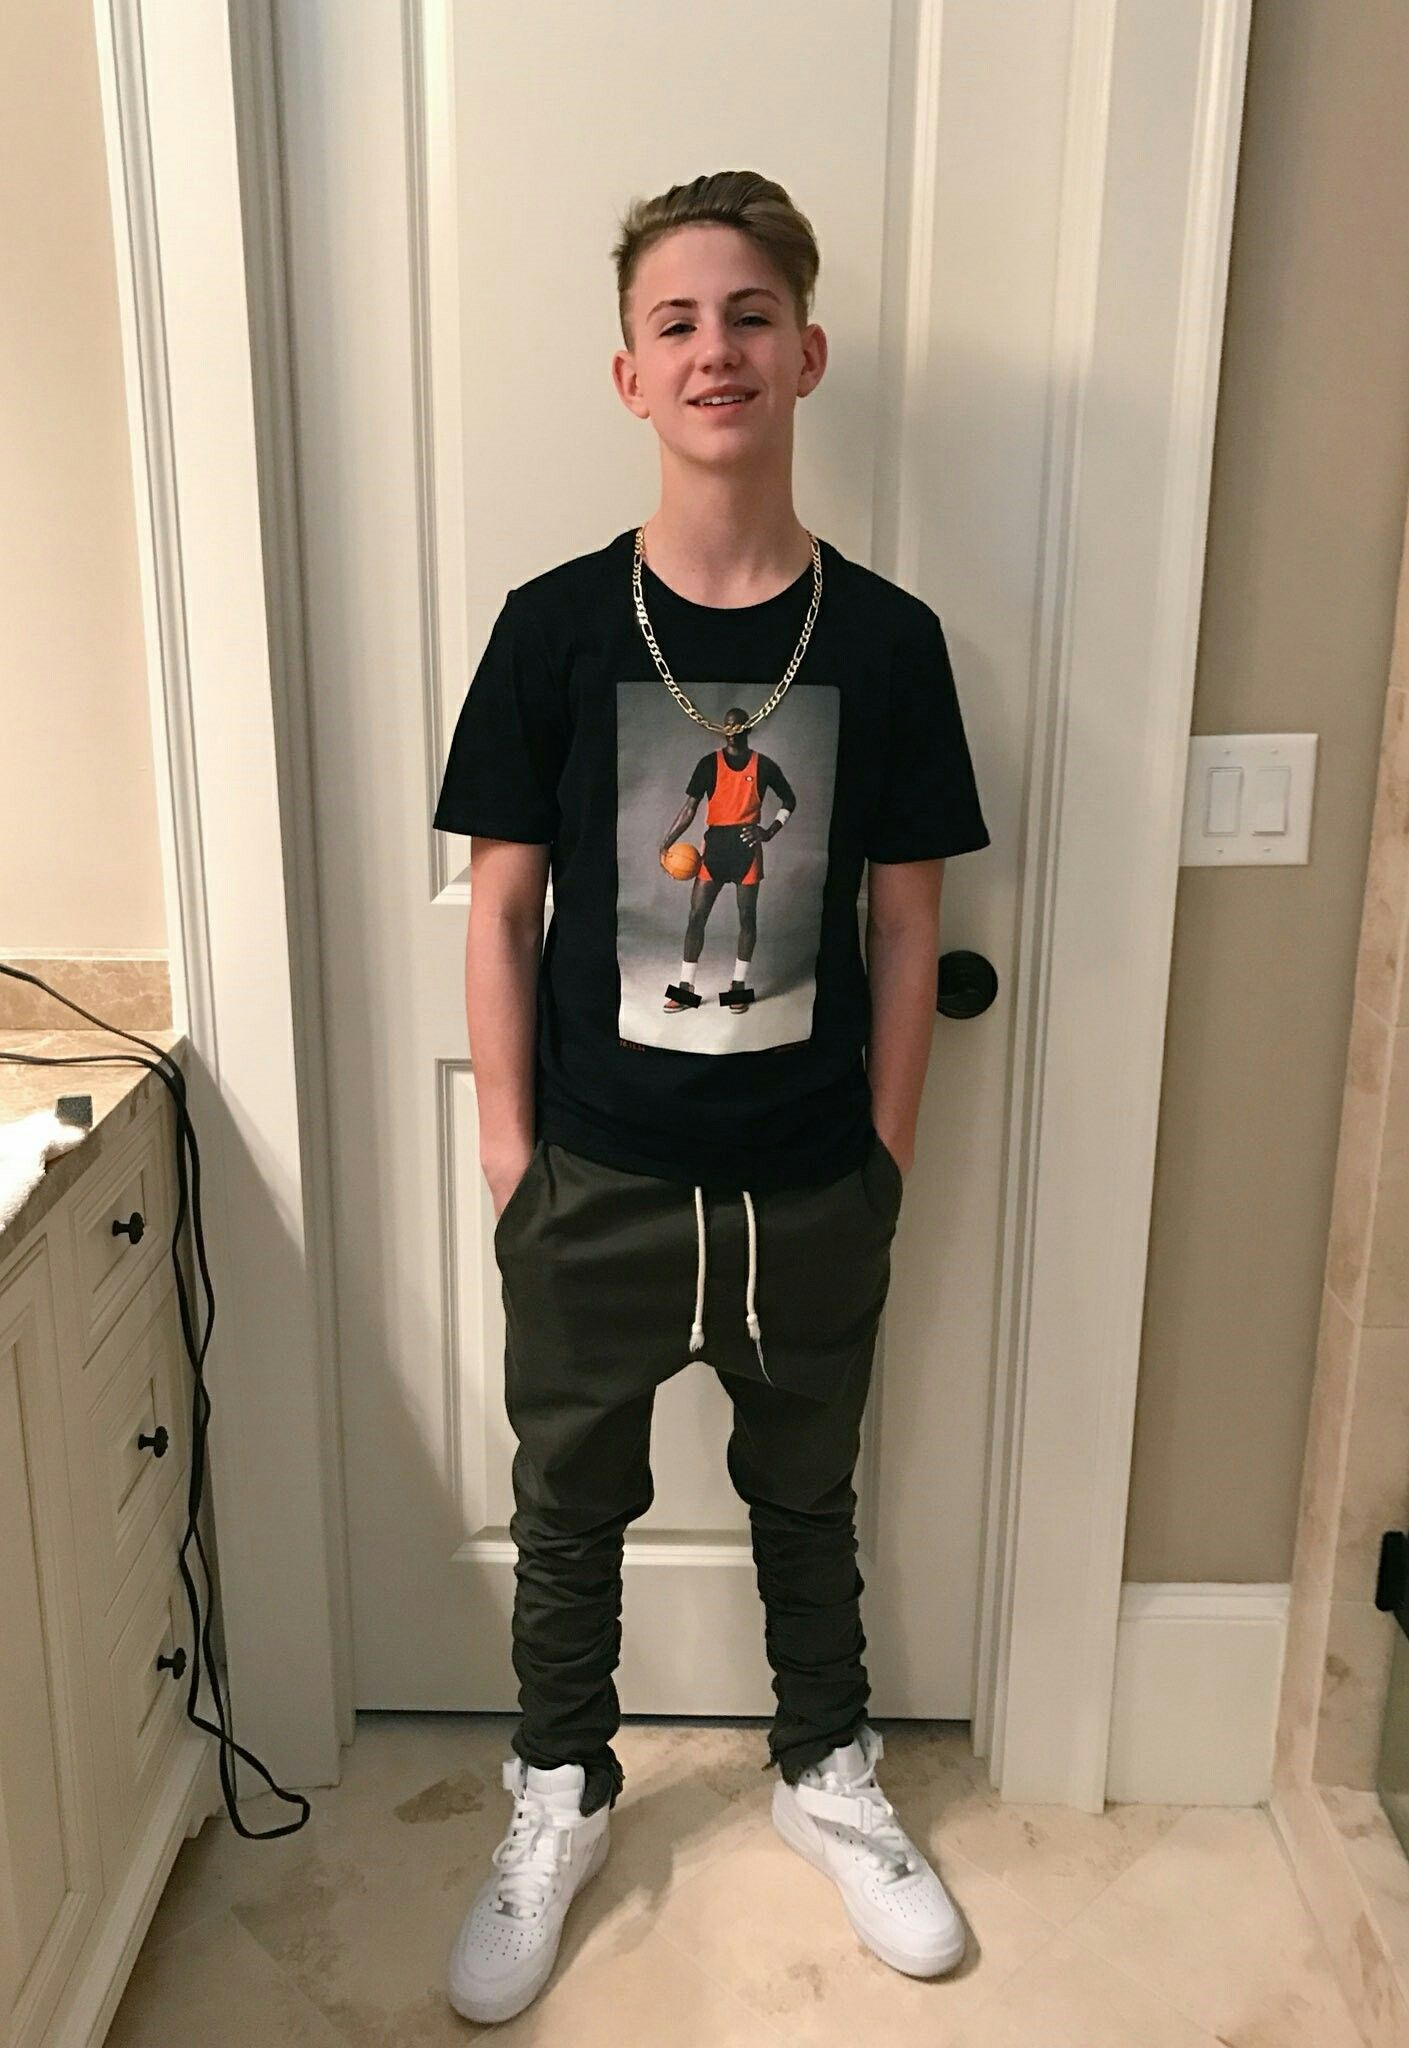 Pin By Abril Torres On 187 Mattyb Preppy Boys Super Skinny Jeans